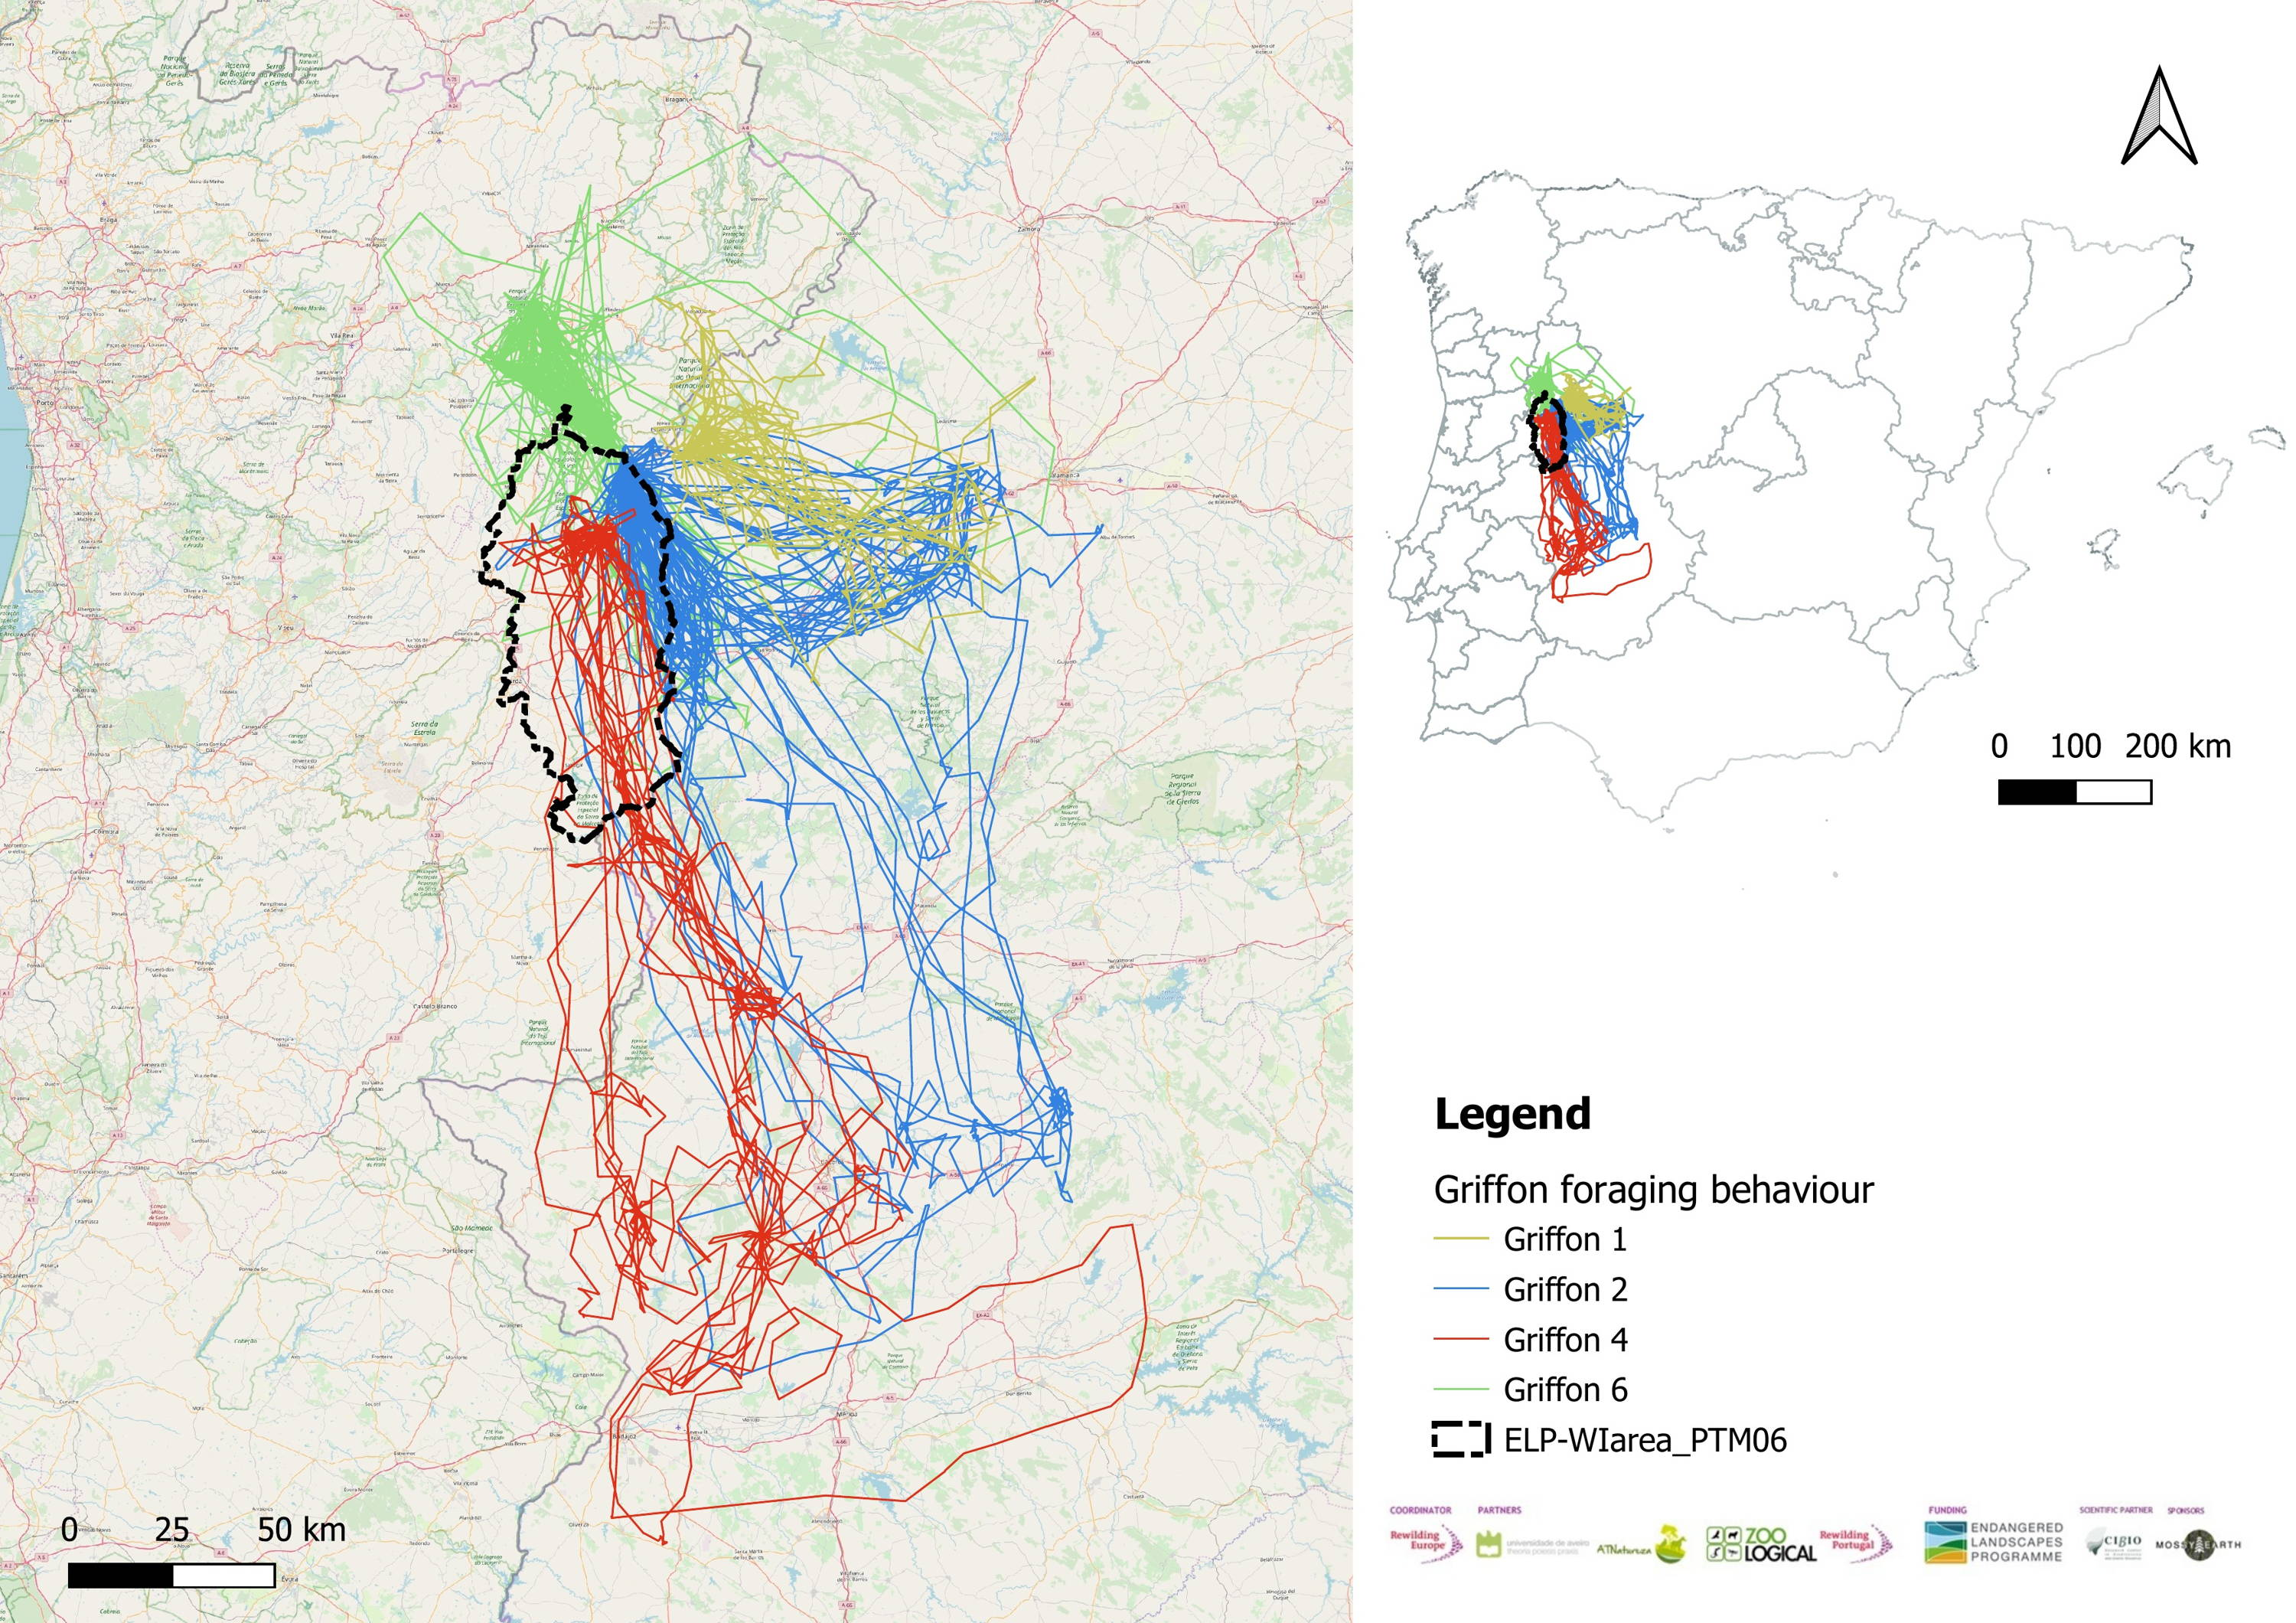 A map tracking the location of Griffon vultures in north of Portugal